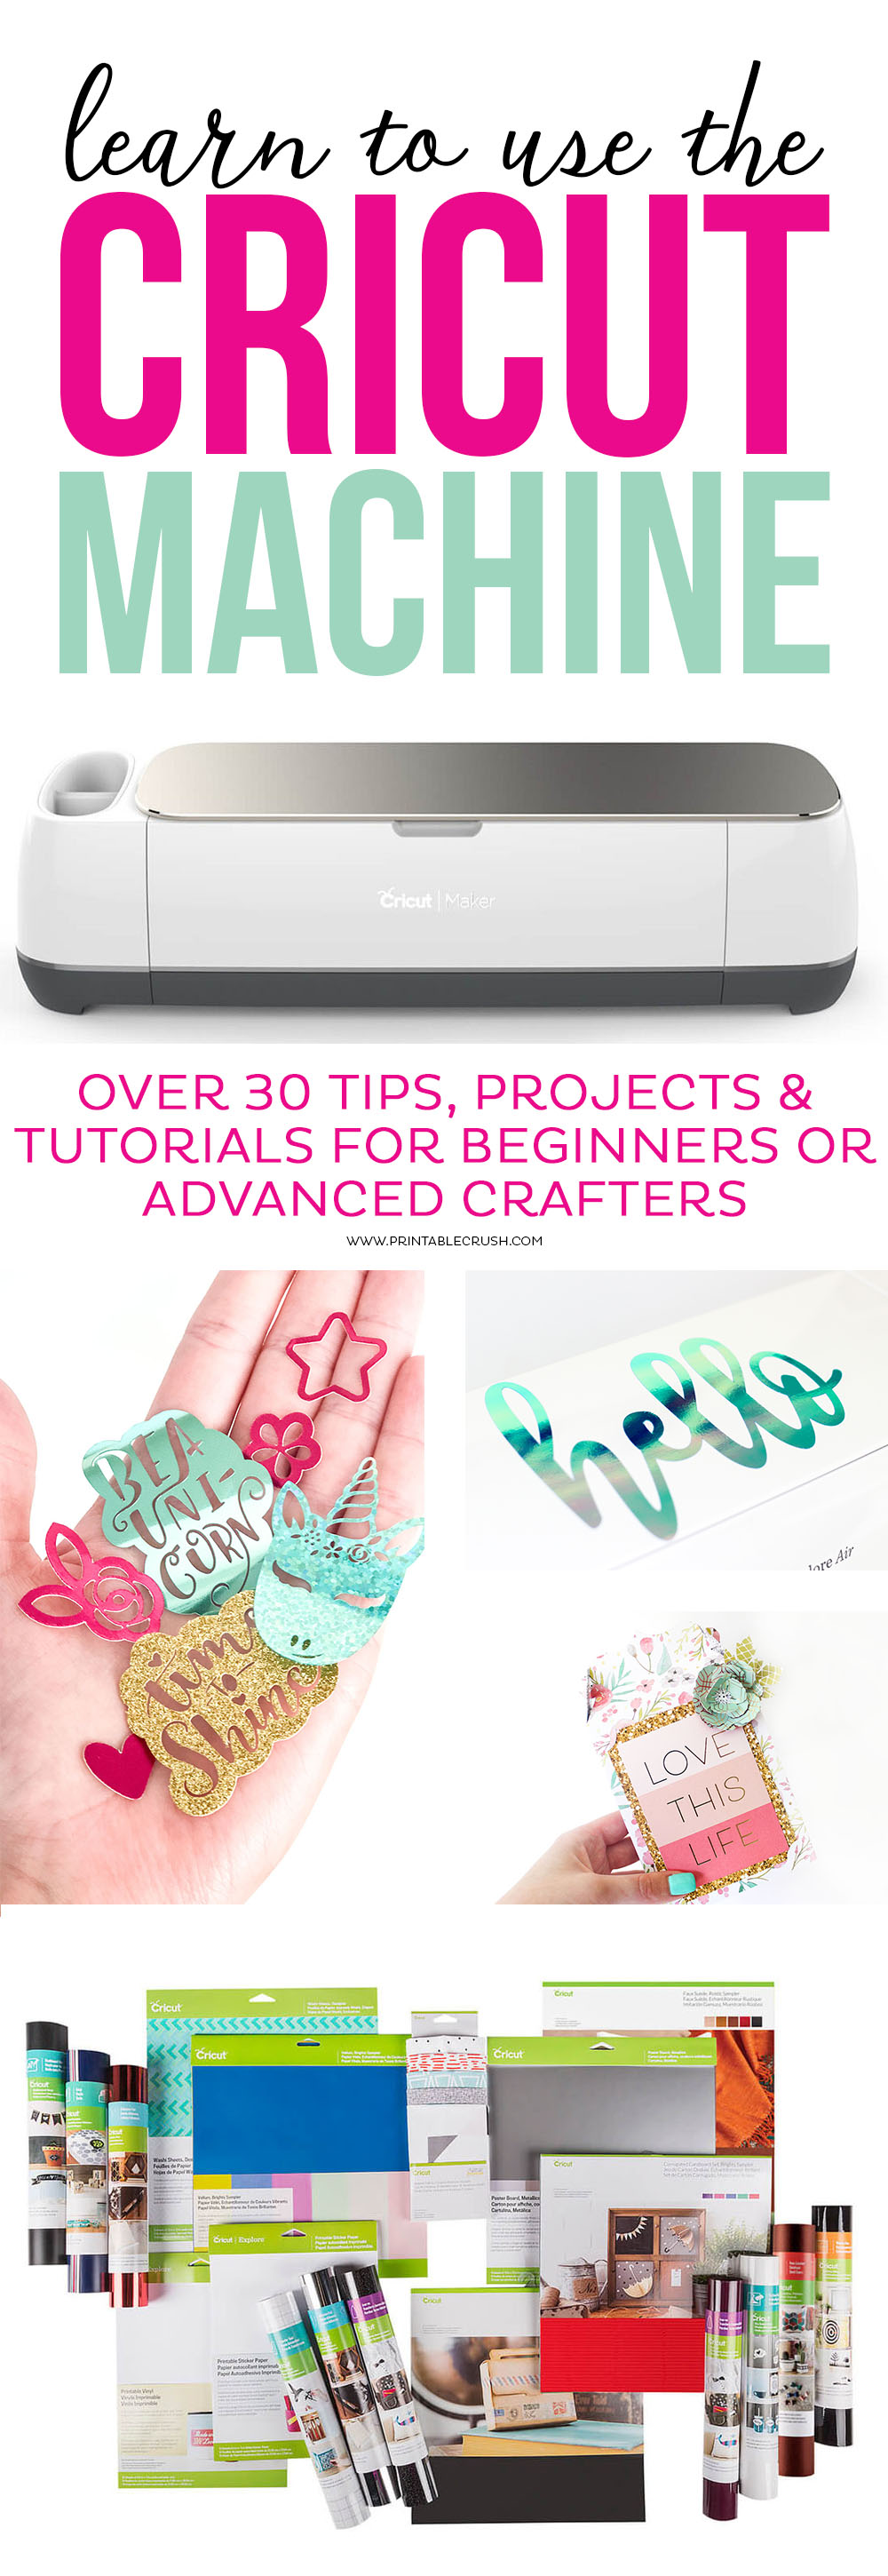 Cricut Machine craft ideas and supplies